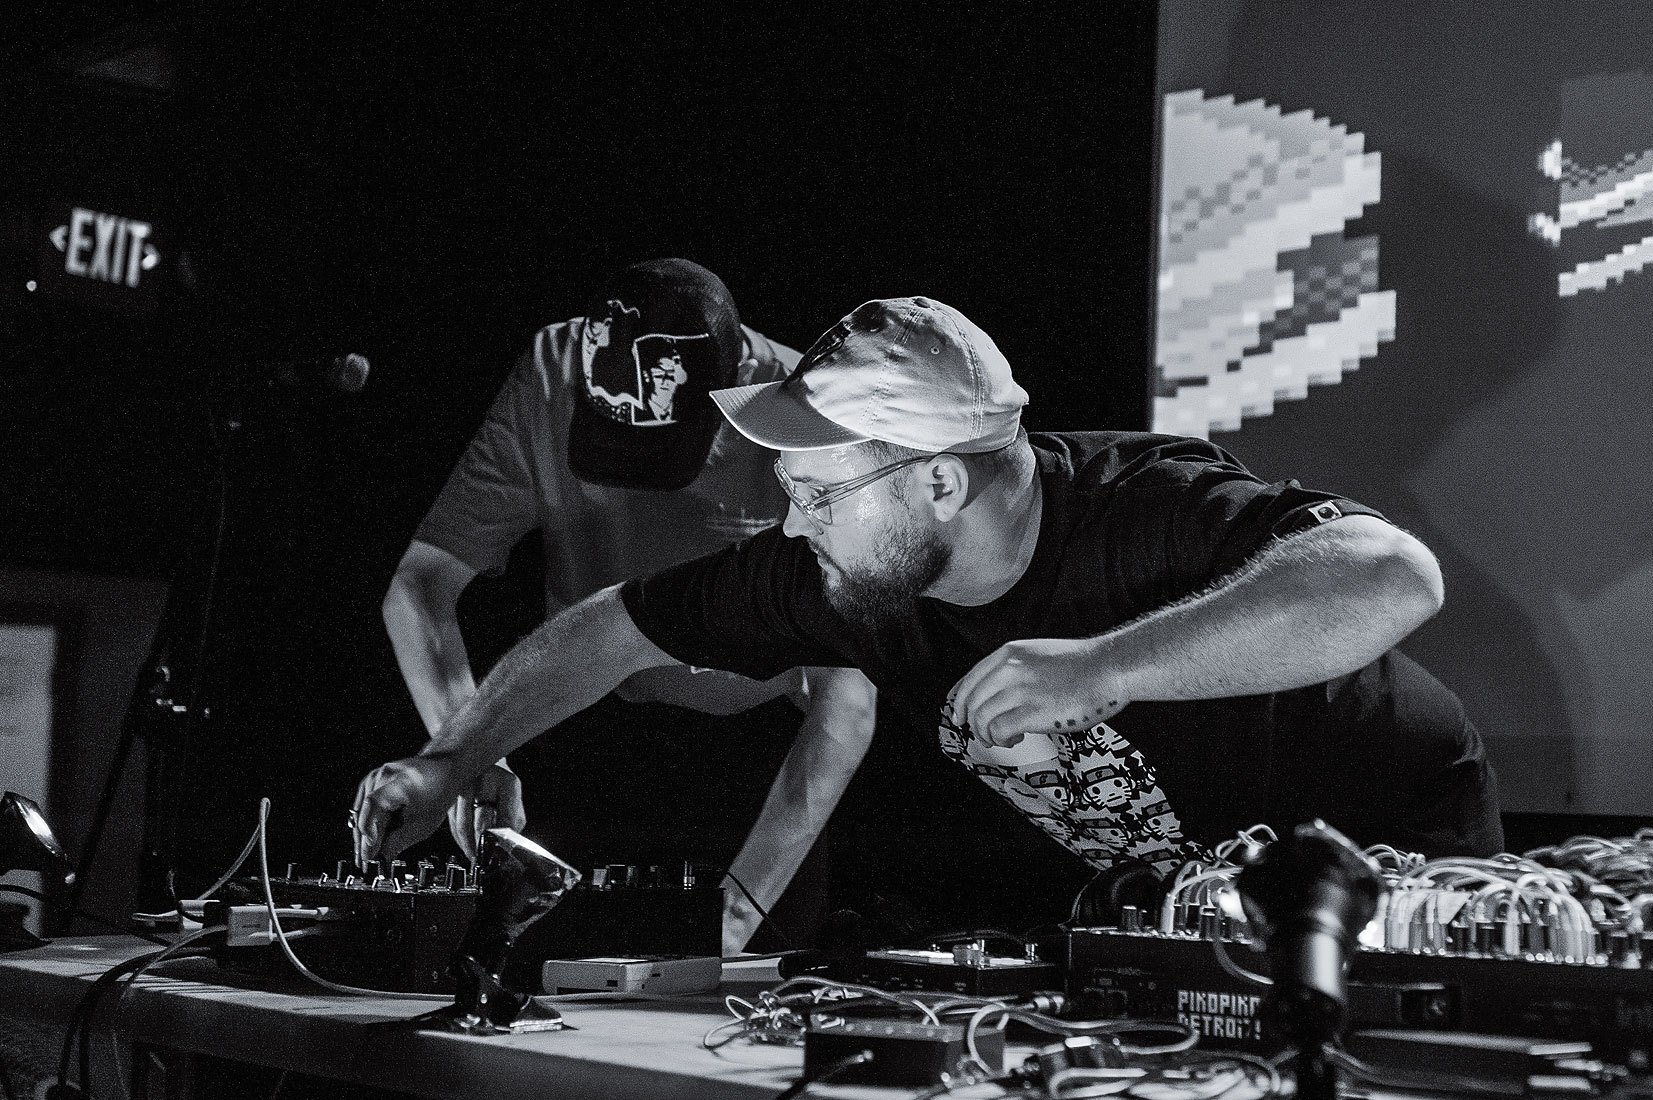 boaconstructor  &  Protoflight  with visuals by dr!p